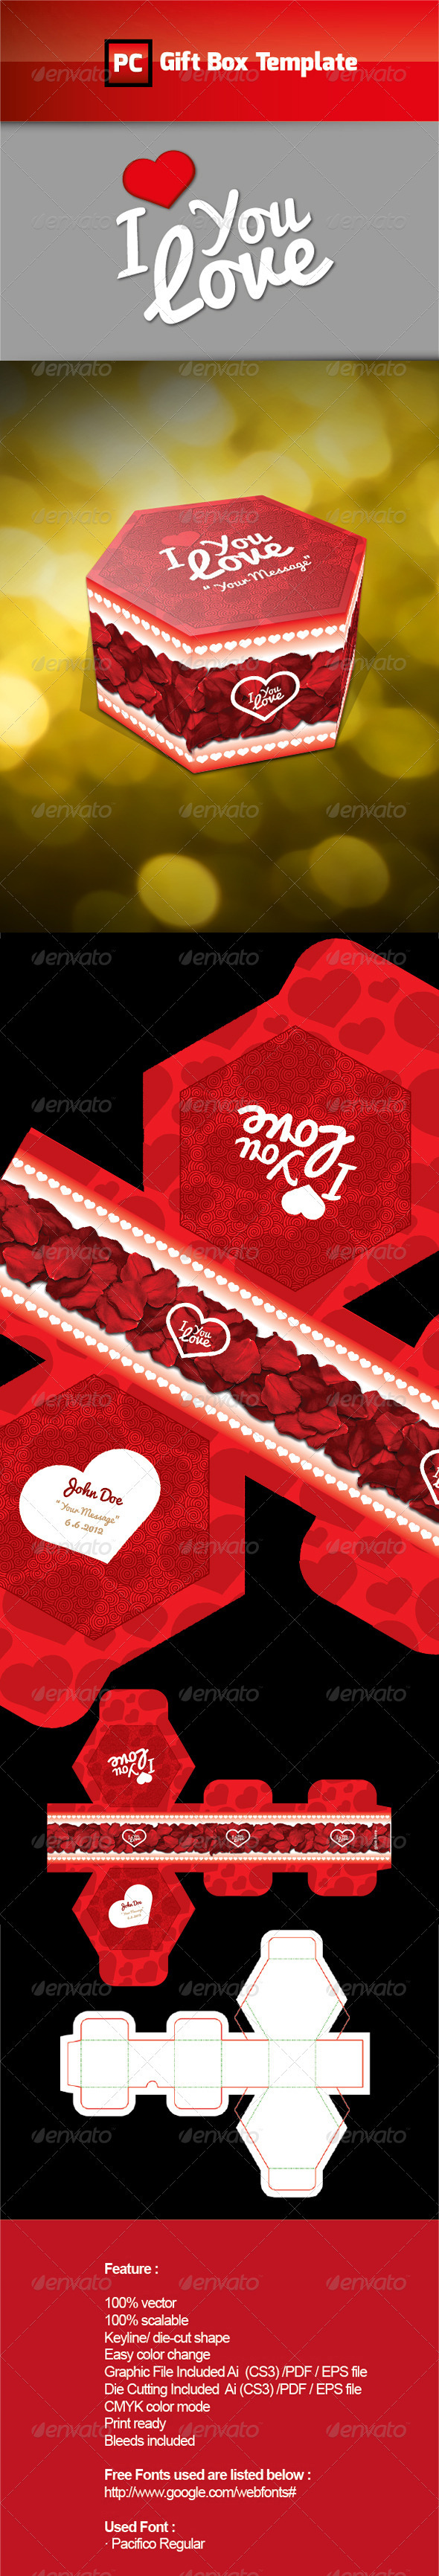 I LOVE Gift Box Template - Packaging Print Templates